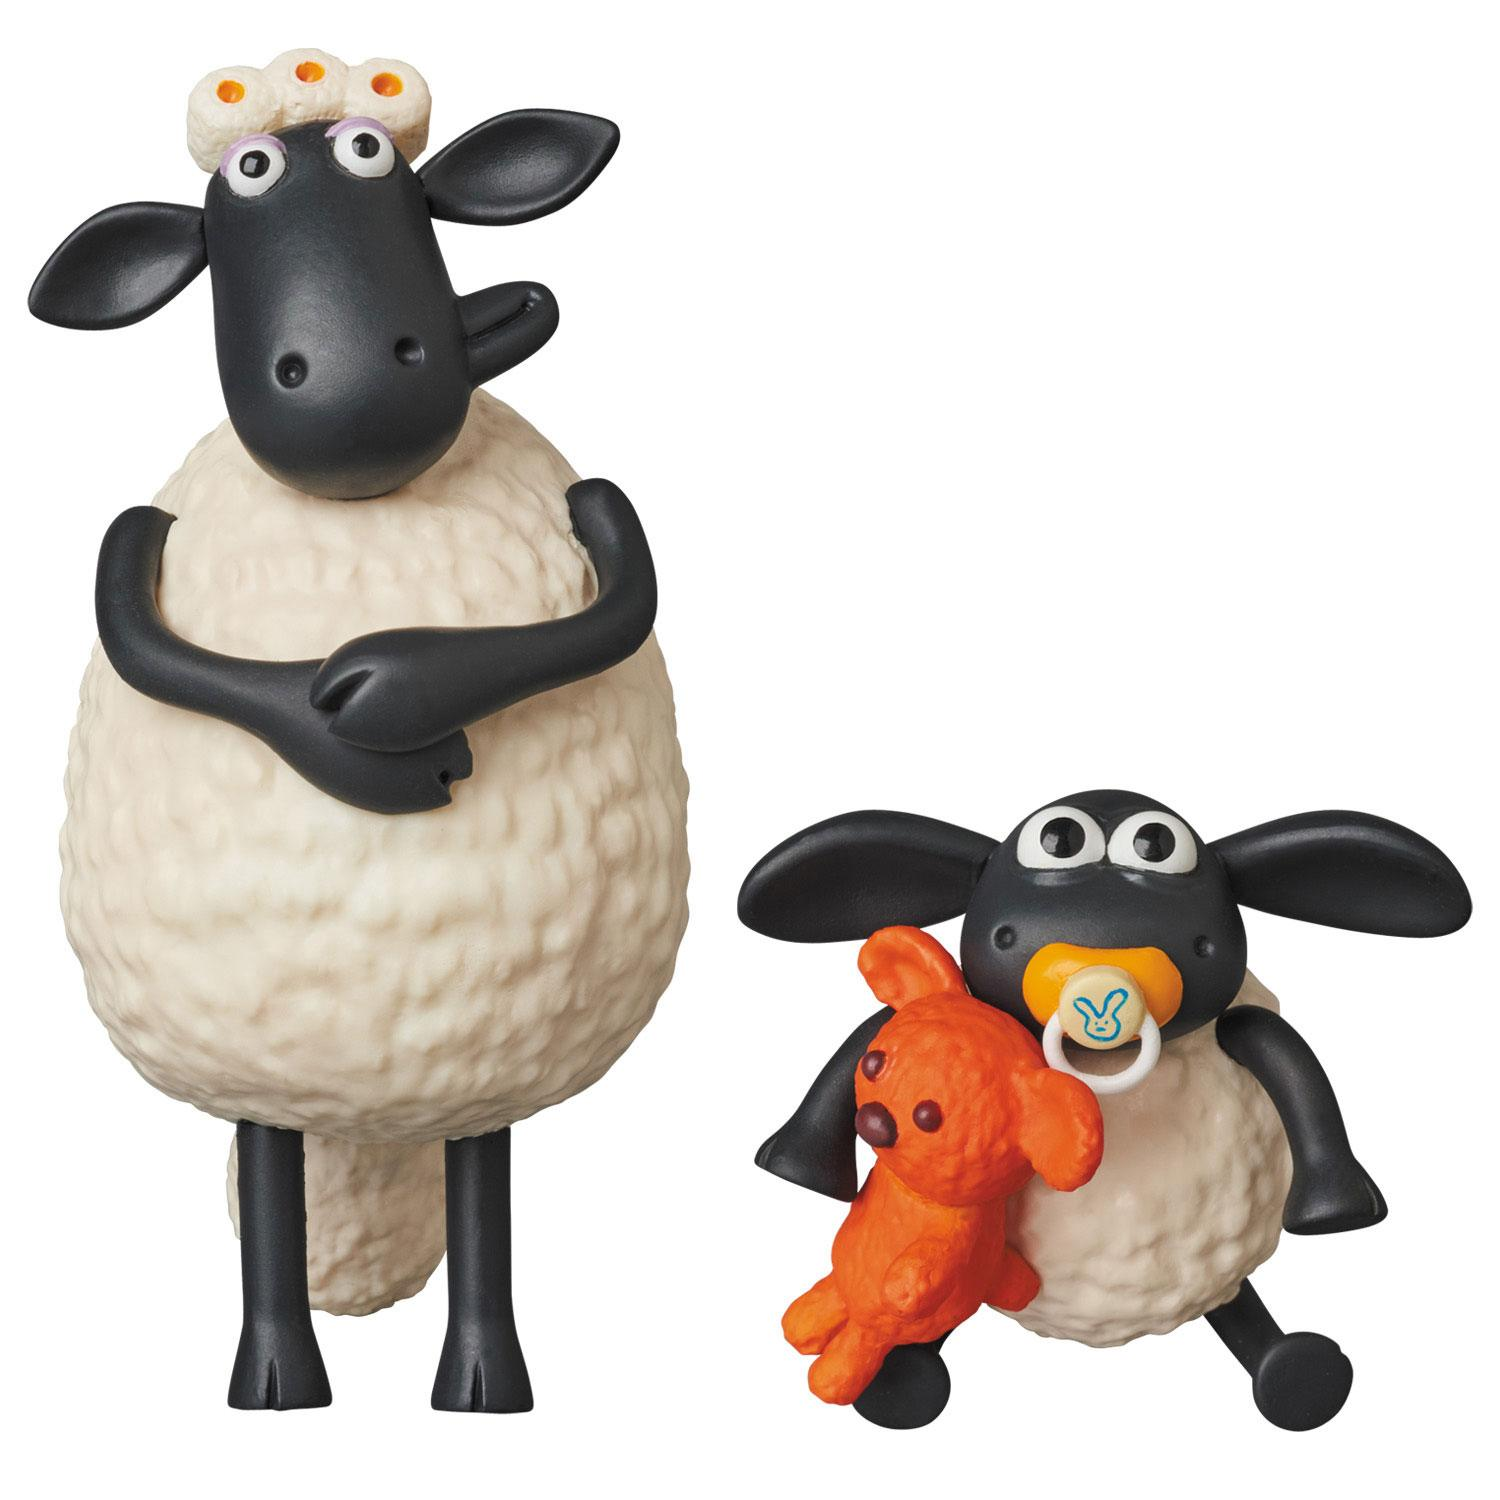 Shaun the Sheep UDF Aardman Animation #2 Mini Figure 2-Pack Timmy & Timmy's Mum 5-8 cm